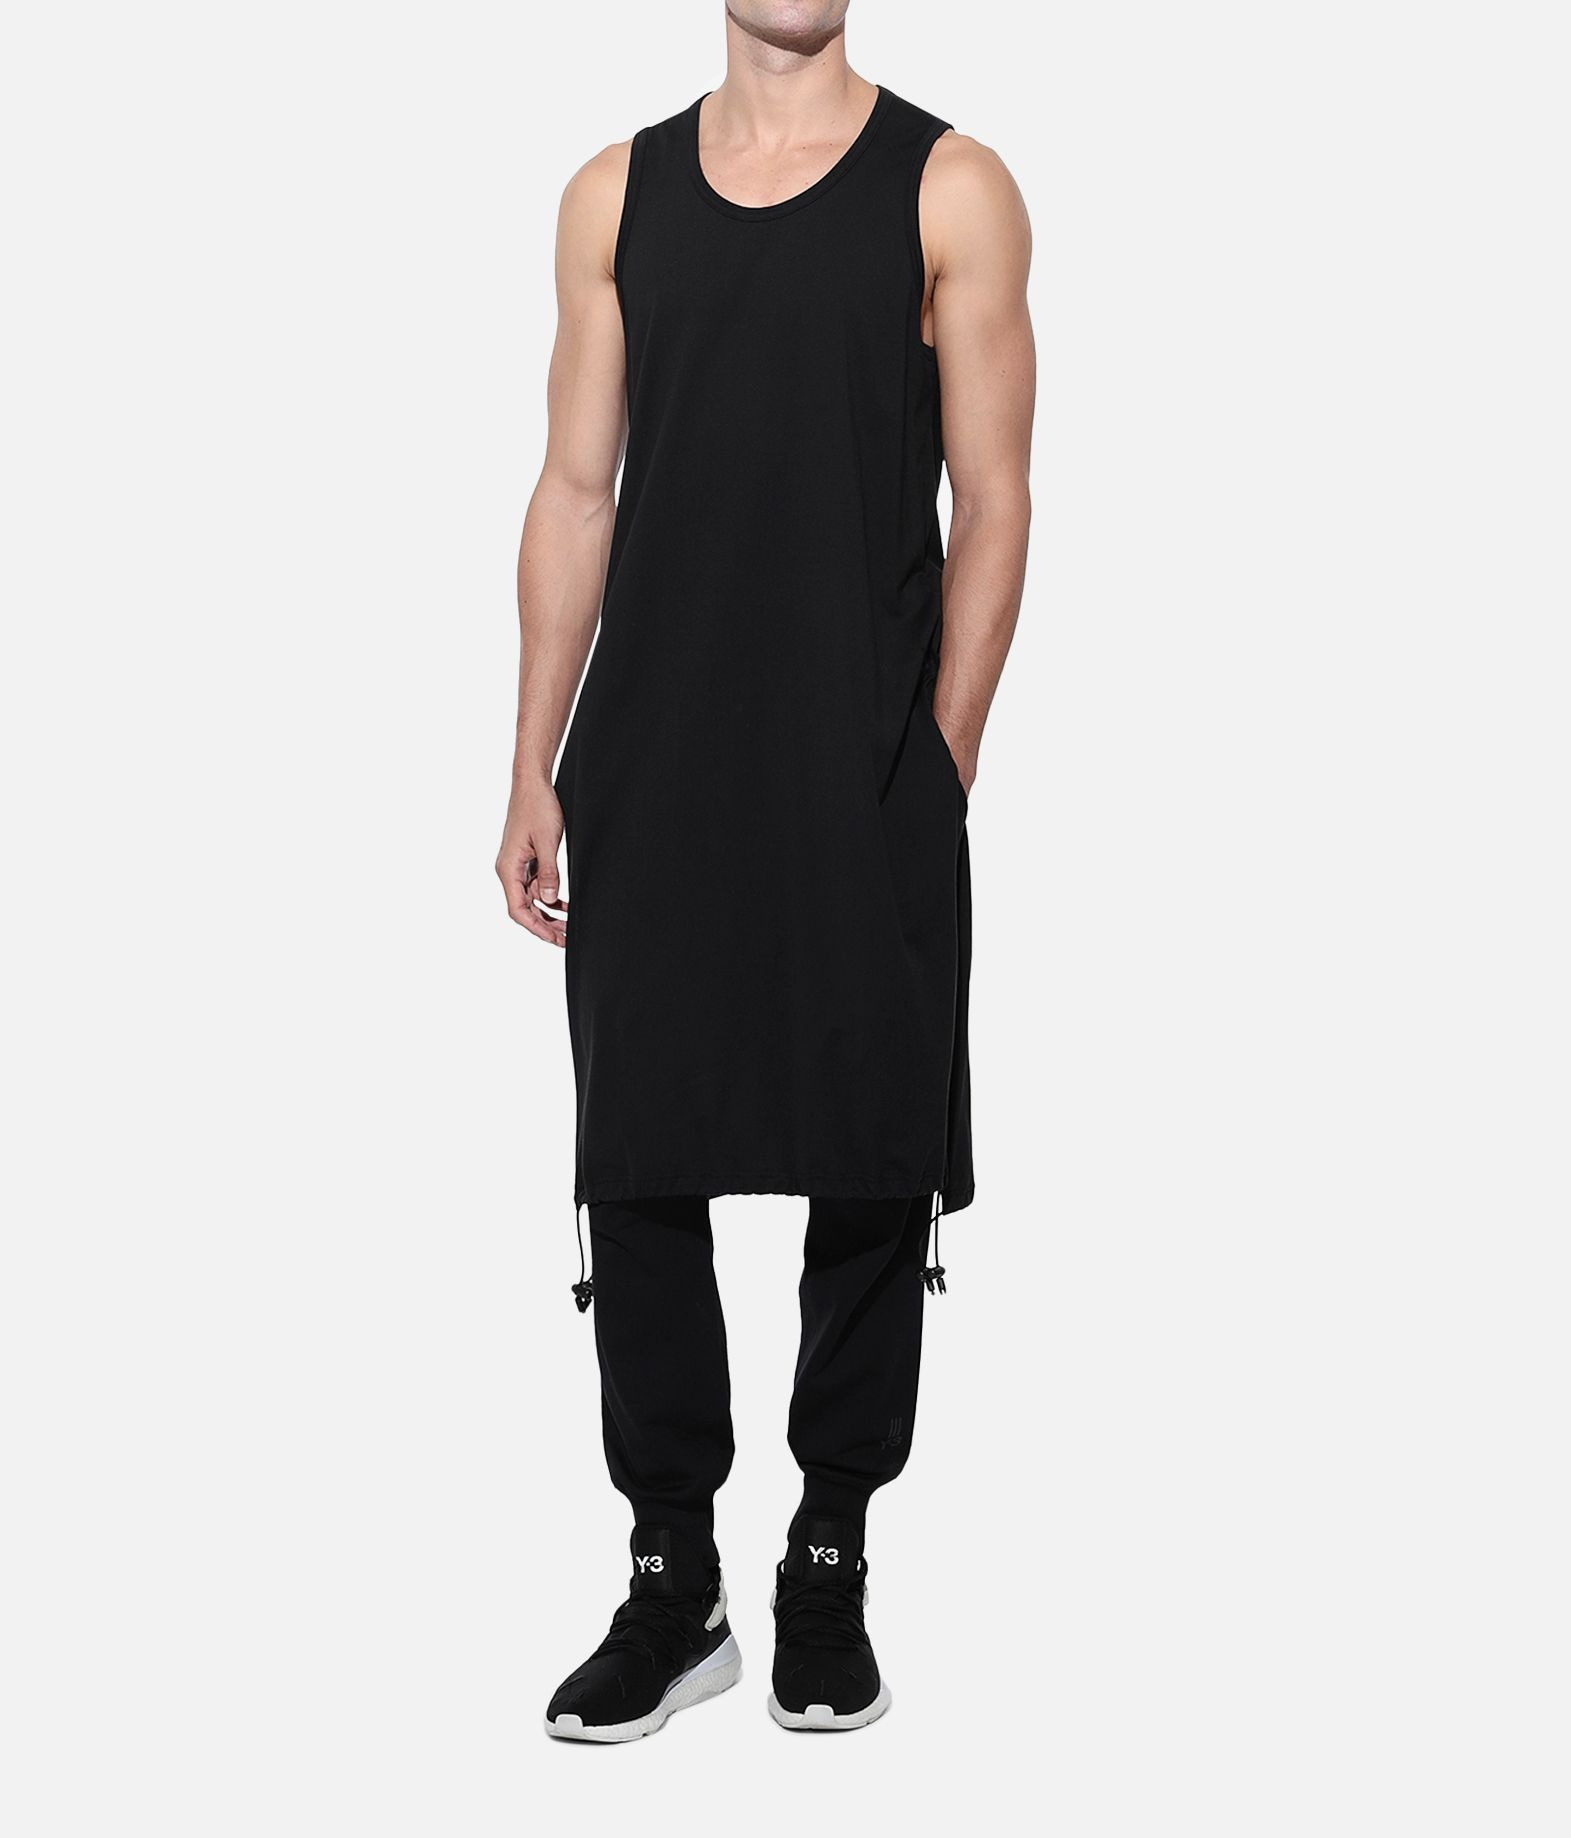 Y-3 Y-3 Drawstring Long Tank Top  Canotta Uomo a